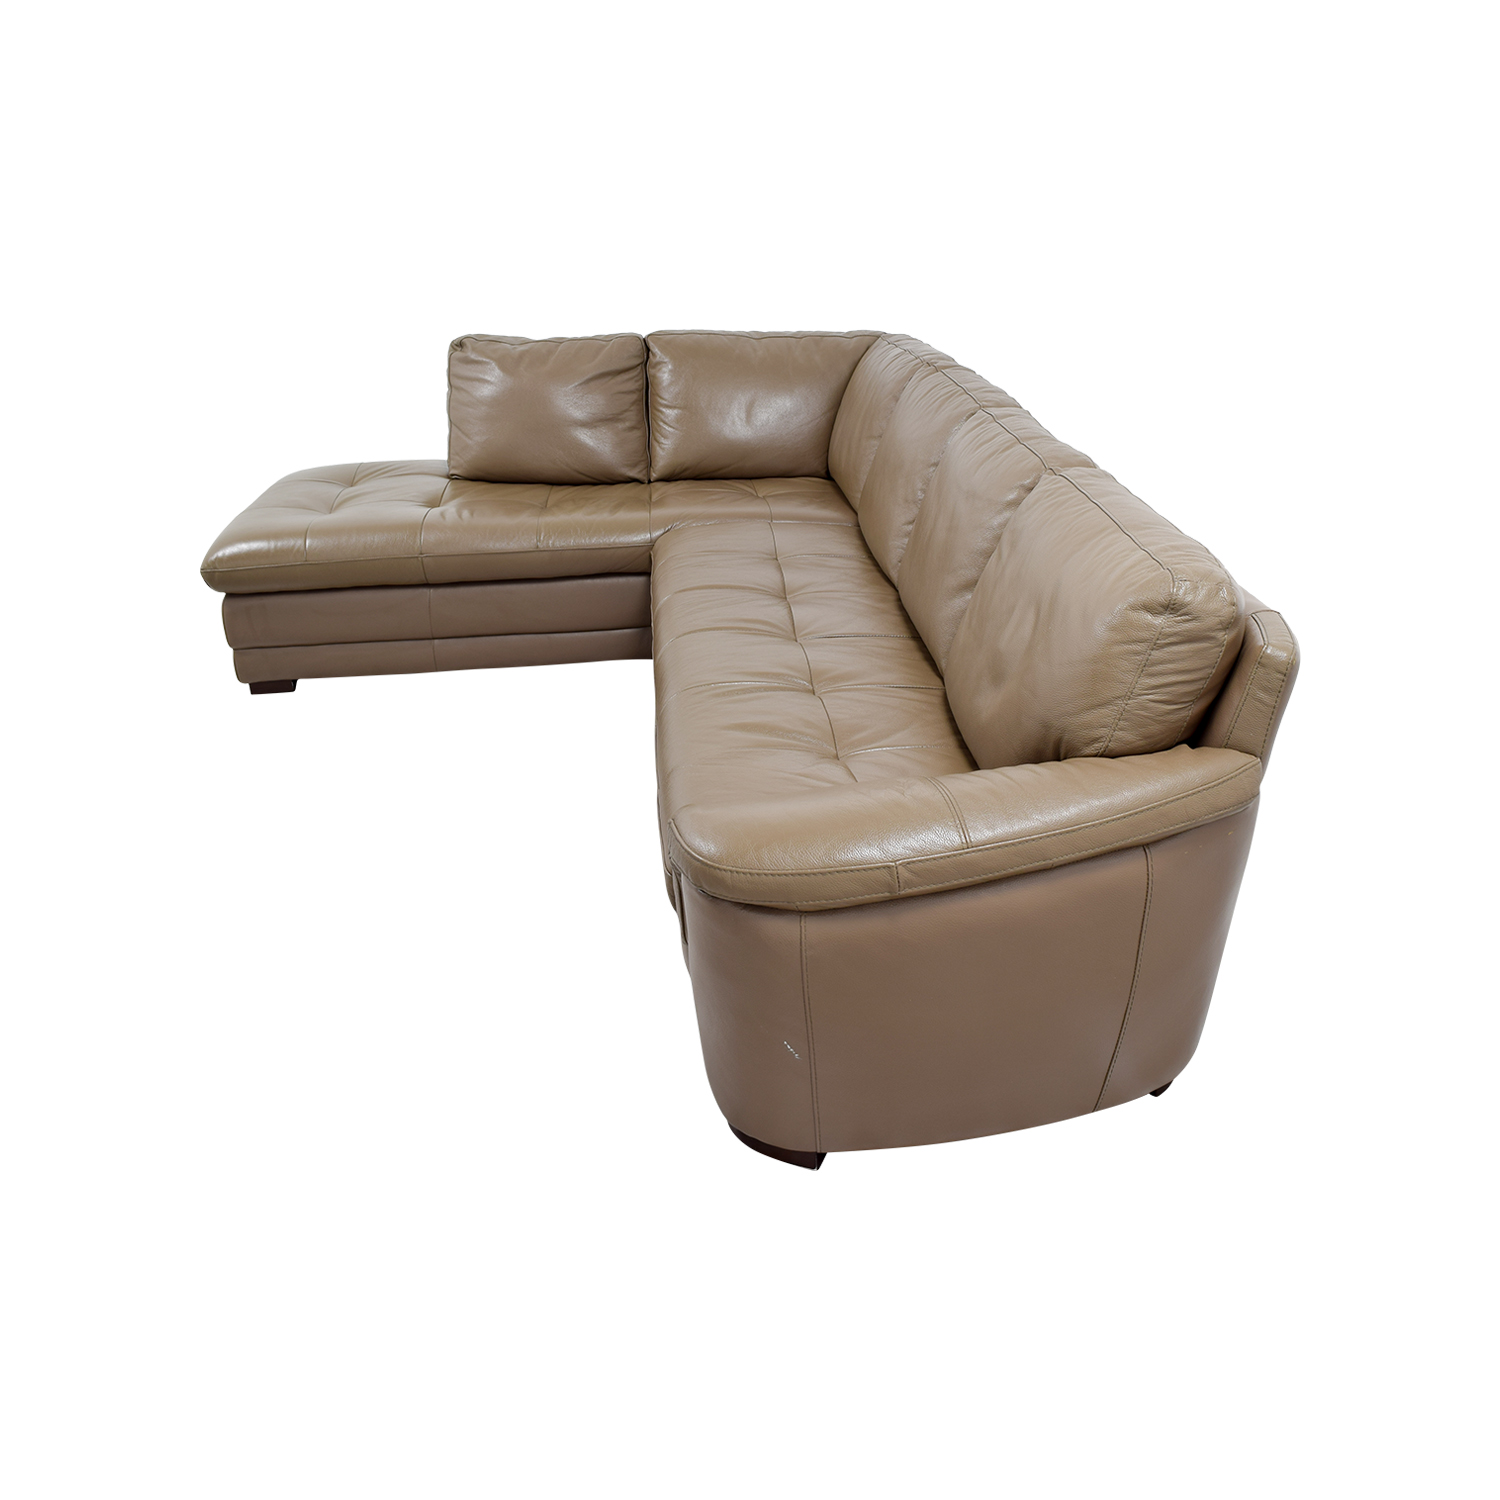 Raymour And Flanigan Sectional Sofas Marsala 2 Pc Leather